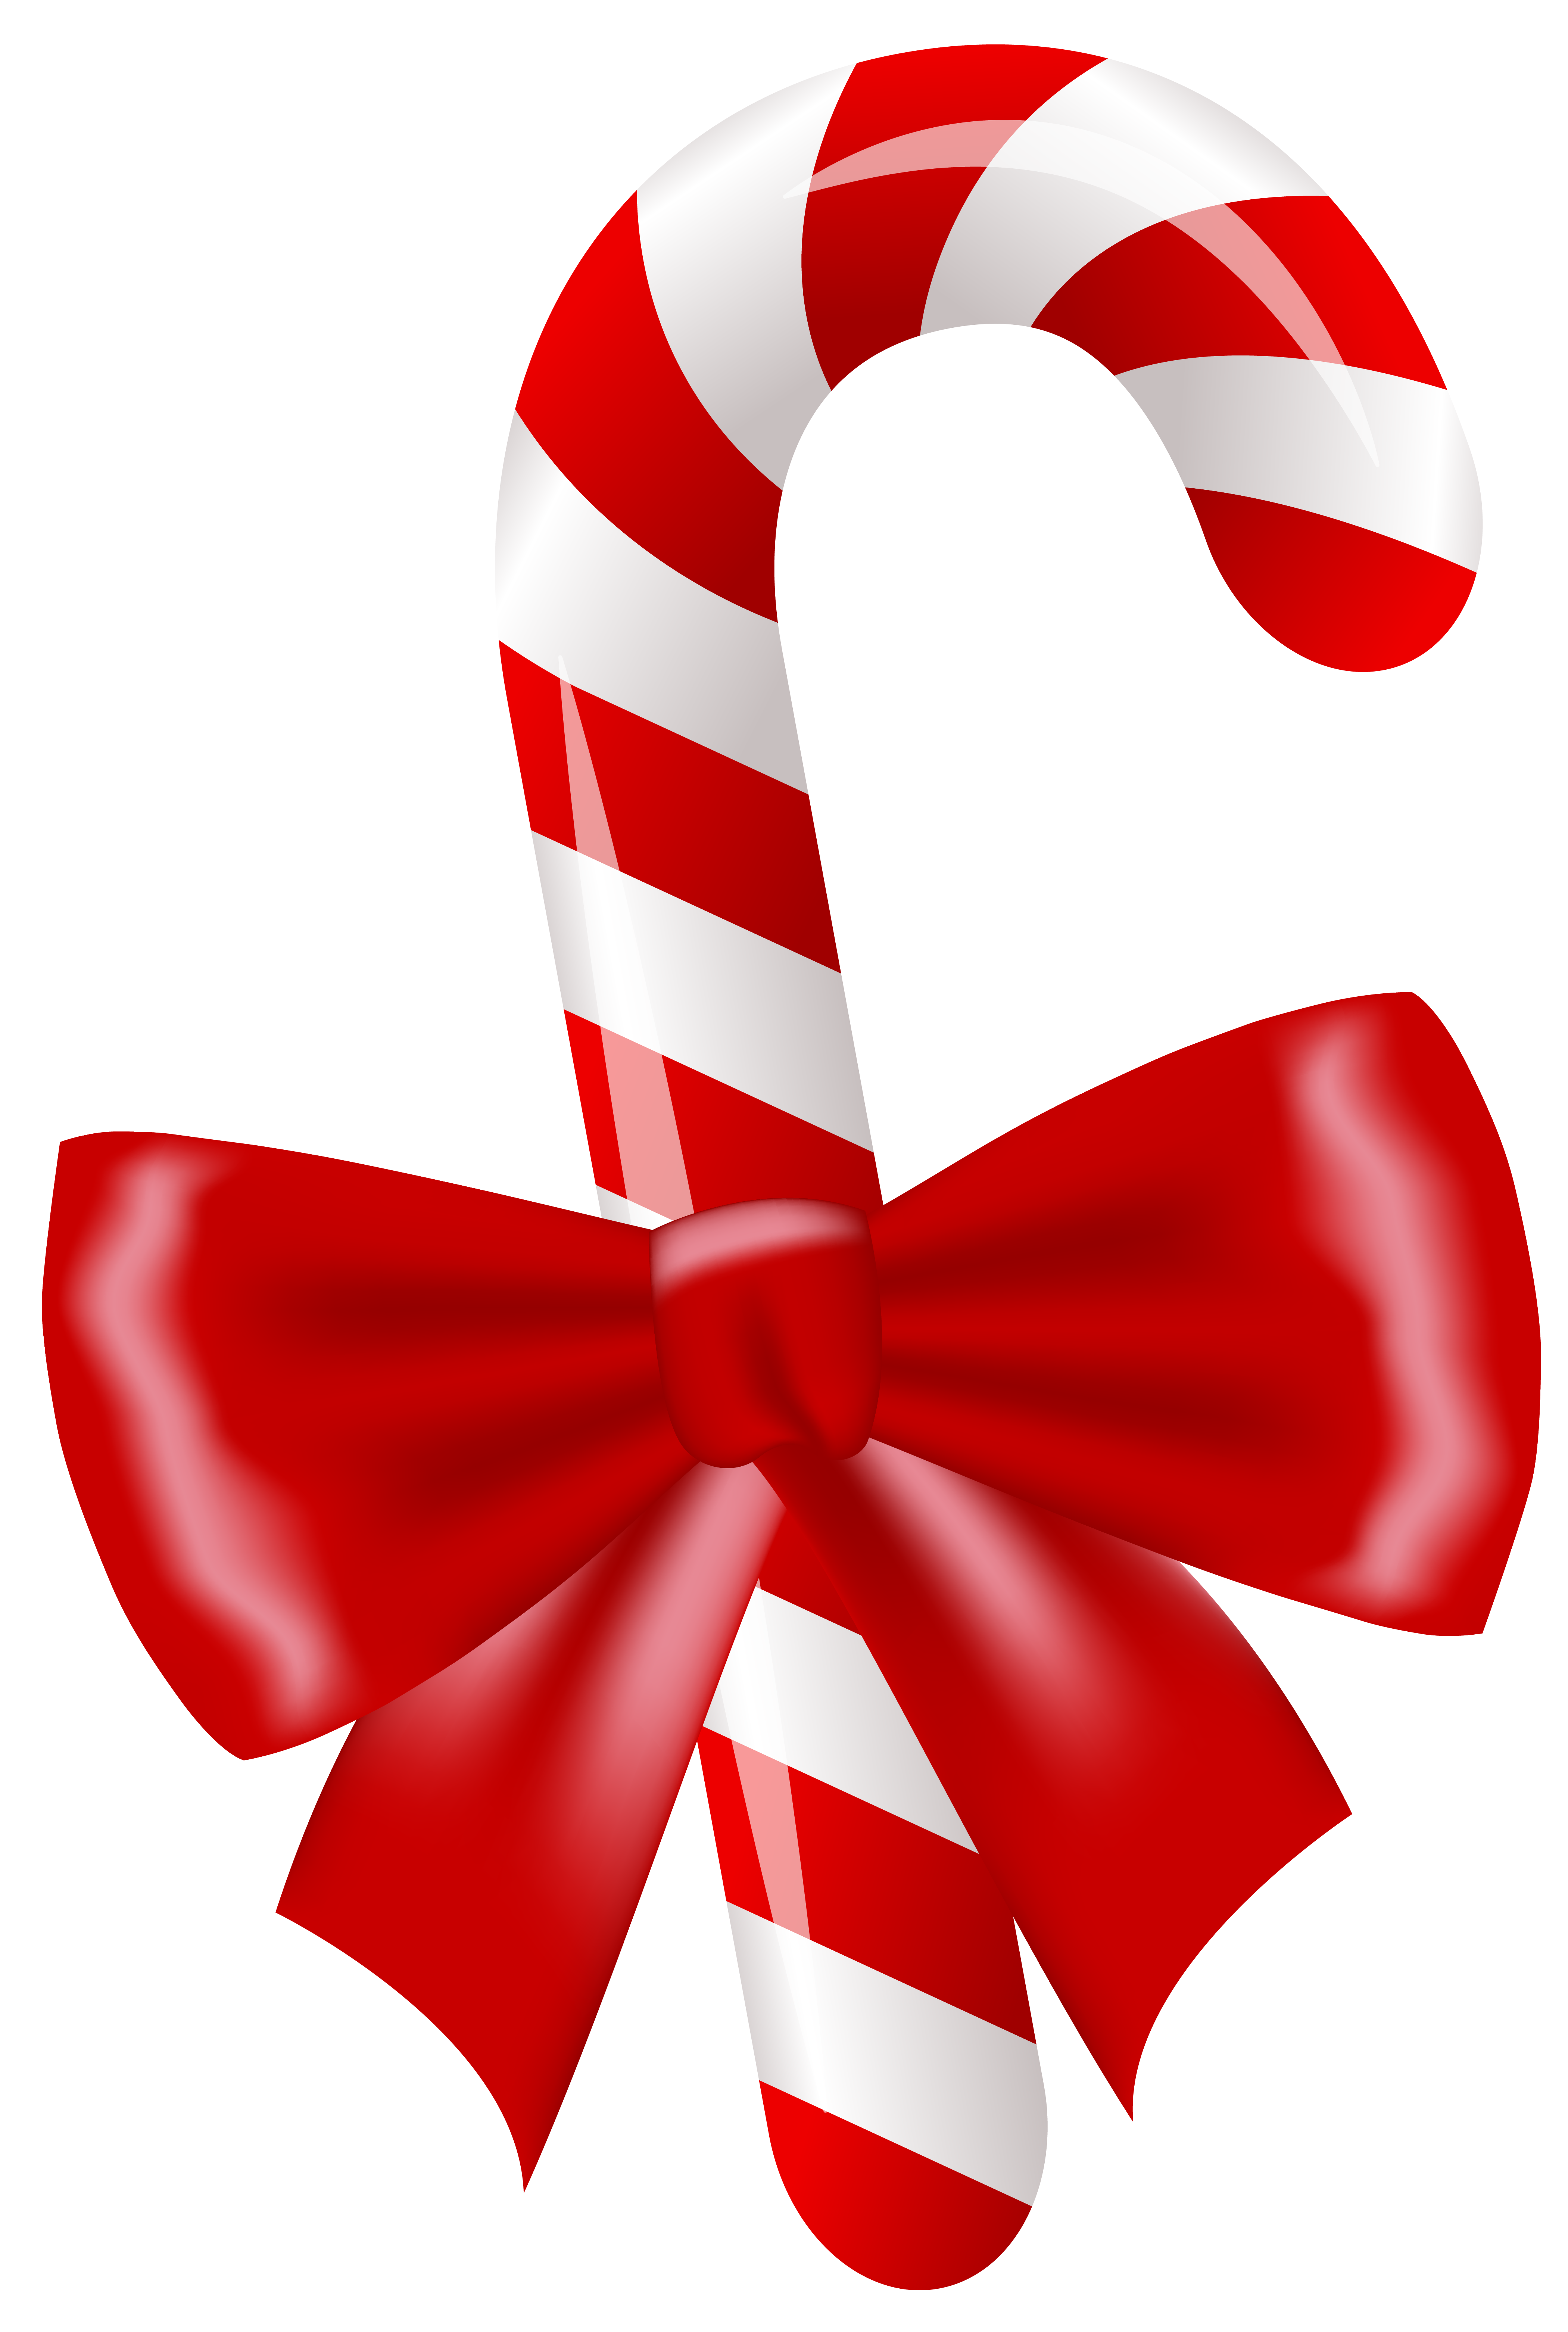 4201x6247 Christmas Candy Cane PNG Clipart Imageu200b Gallery Yopriceville